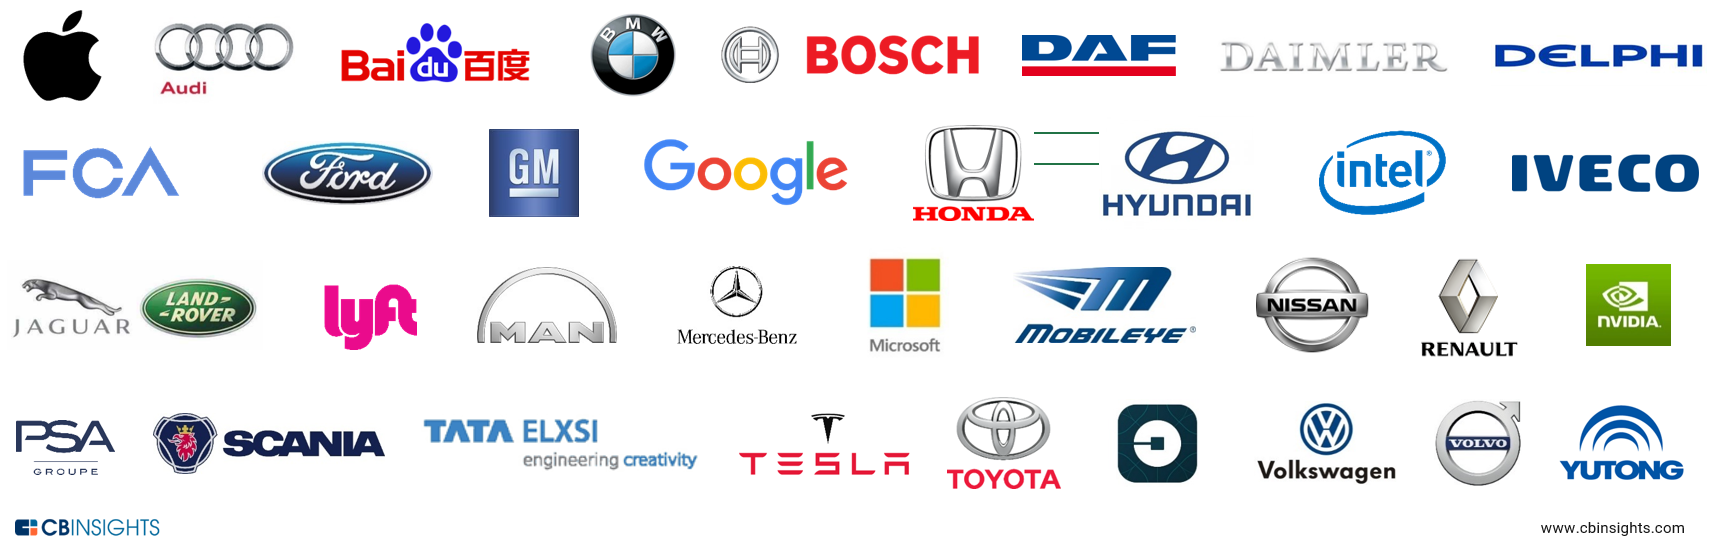 Manufacturers - Connected Vehicles Technology - LibGuides at